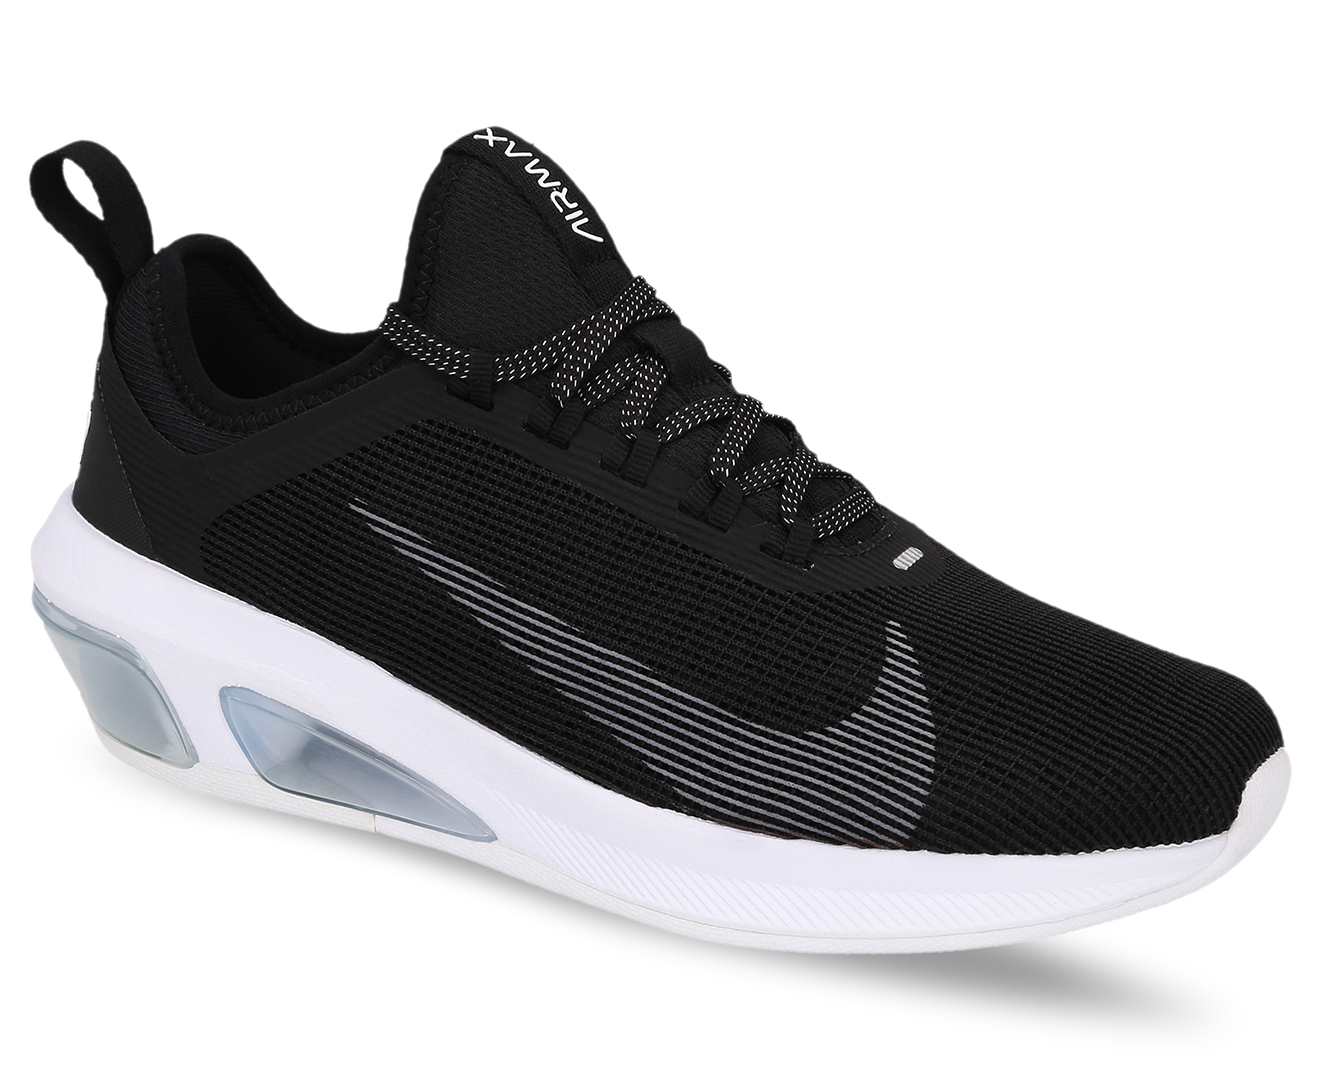 Nike Women/'s Air Max Fly Running Shoes Black White AT2505-005 NEW